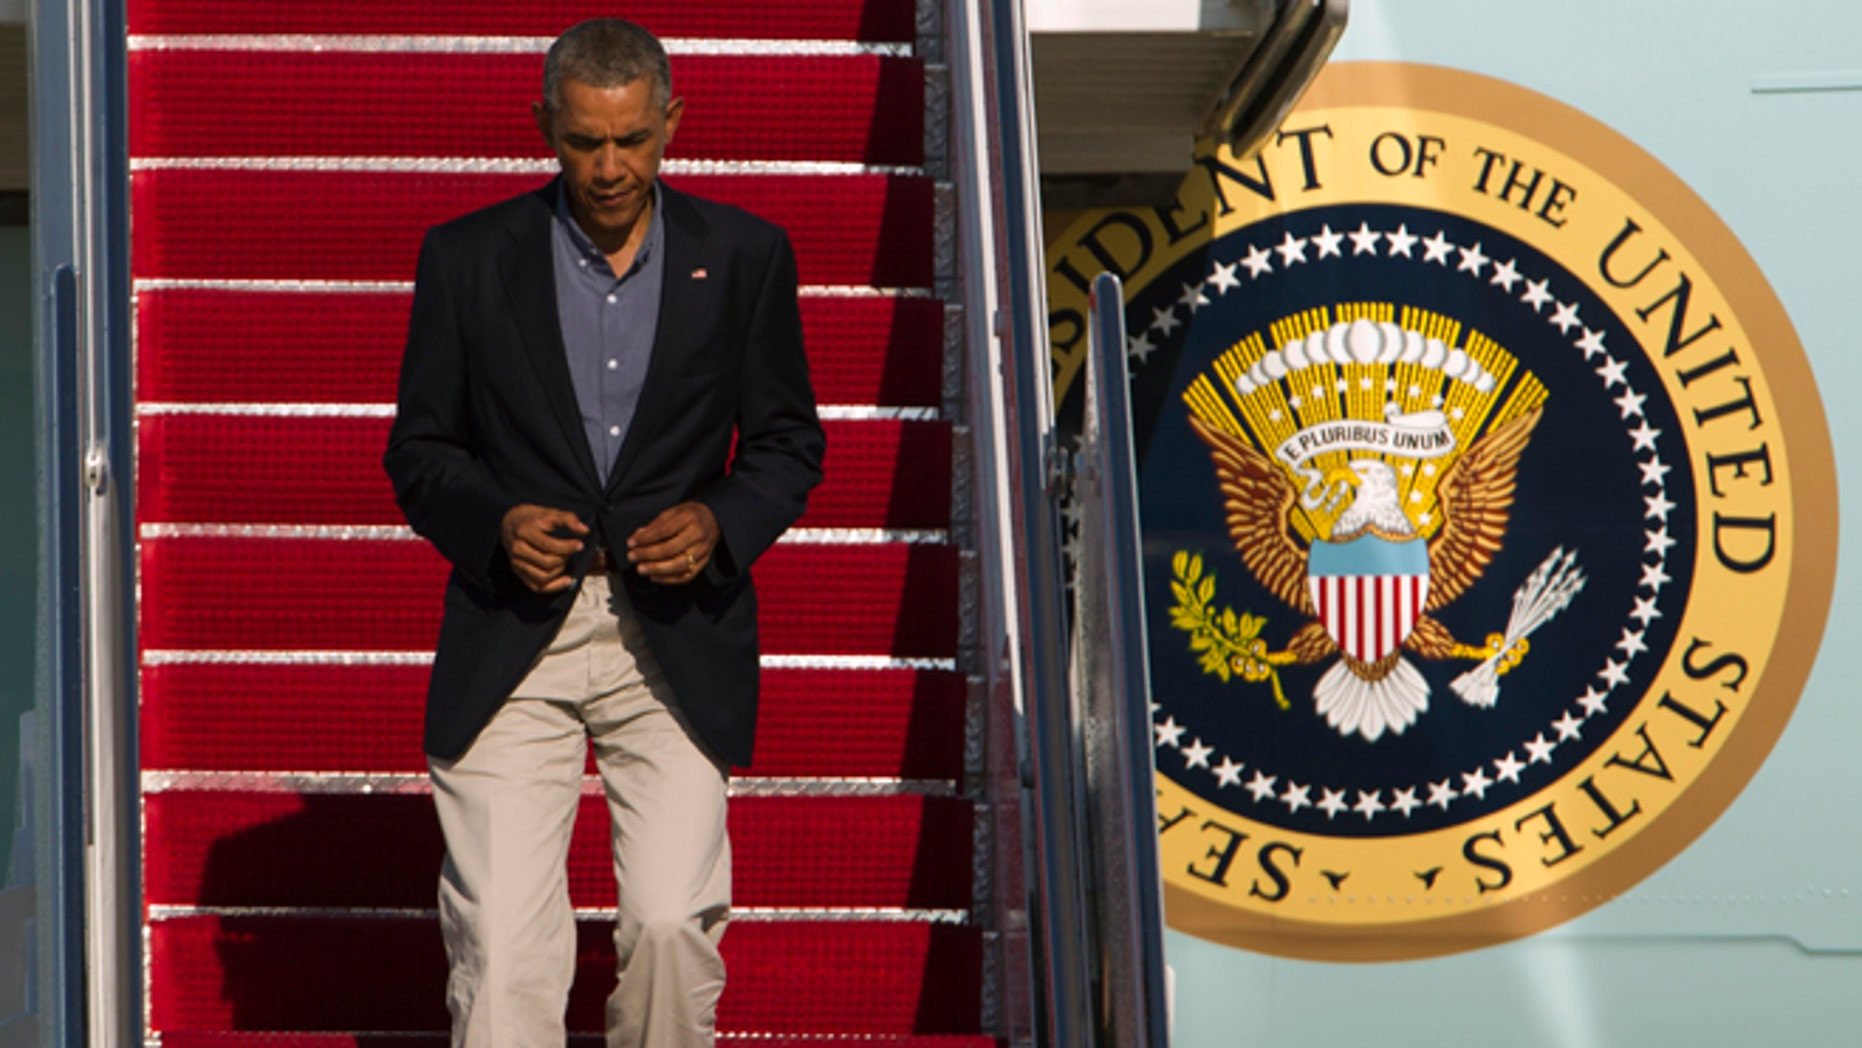 President Barack Obama walks down the stairs of Air Force One upon arrival at Andrews Air Force Base, Md., Monday, Sept. 1, 2014.